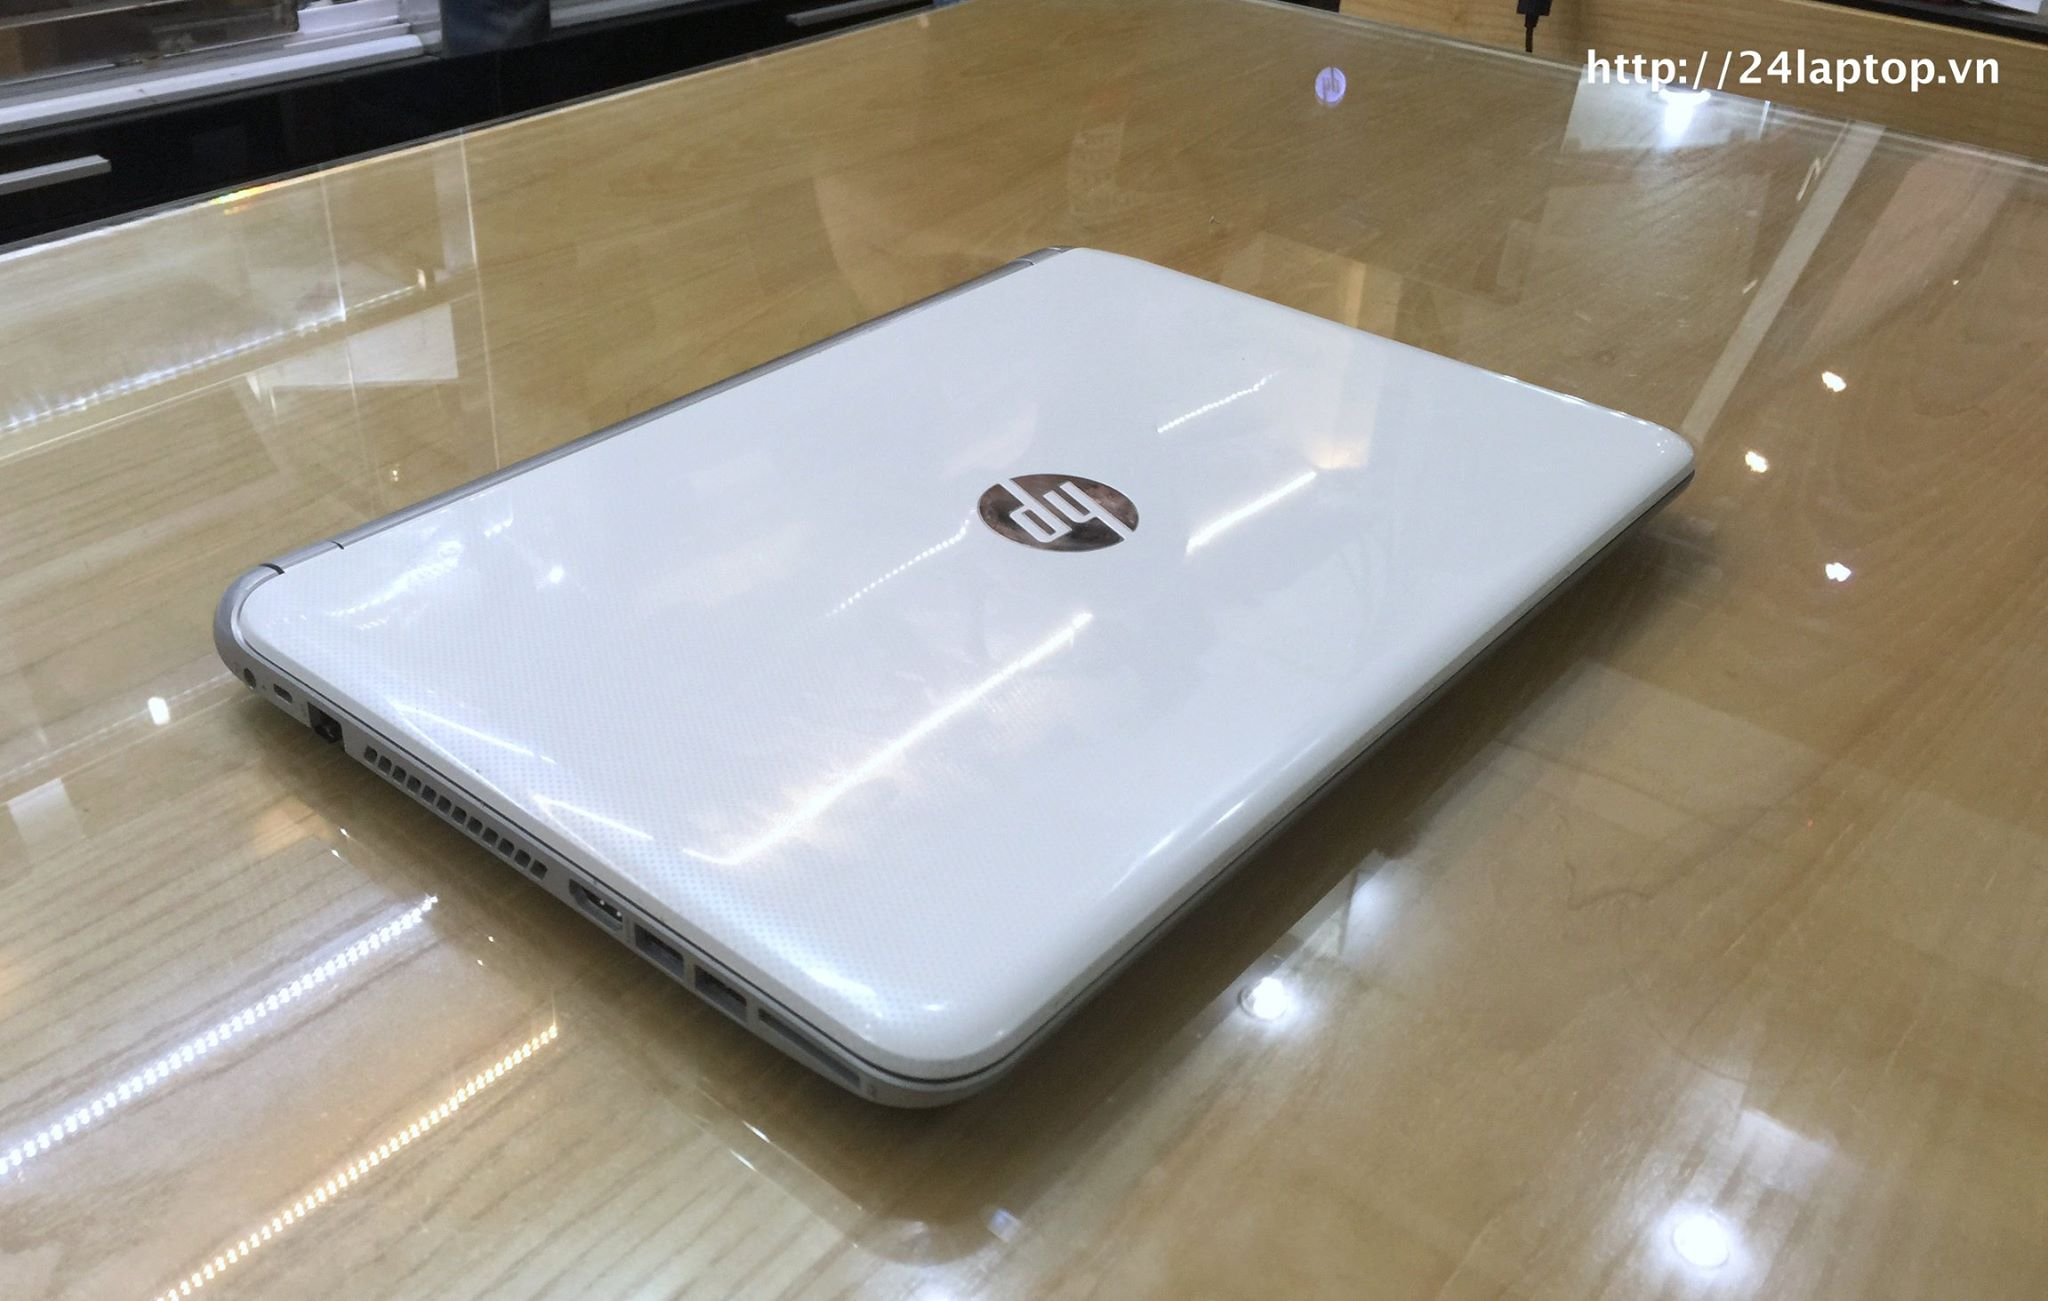 Laptop HP Pavilion 14 i5 VGA 2GB_3.jpg